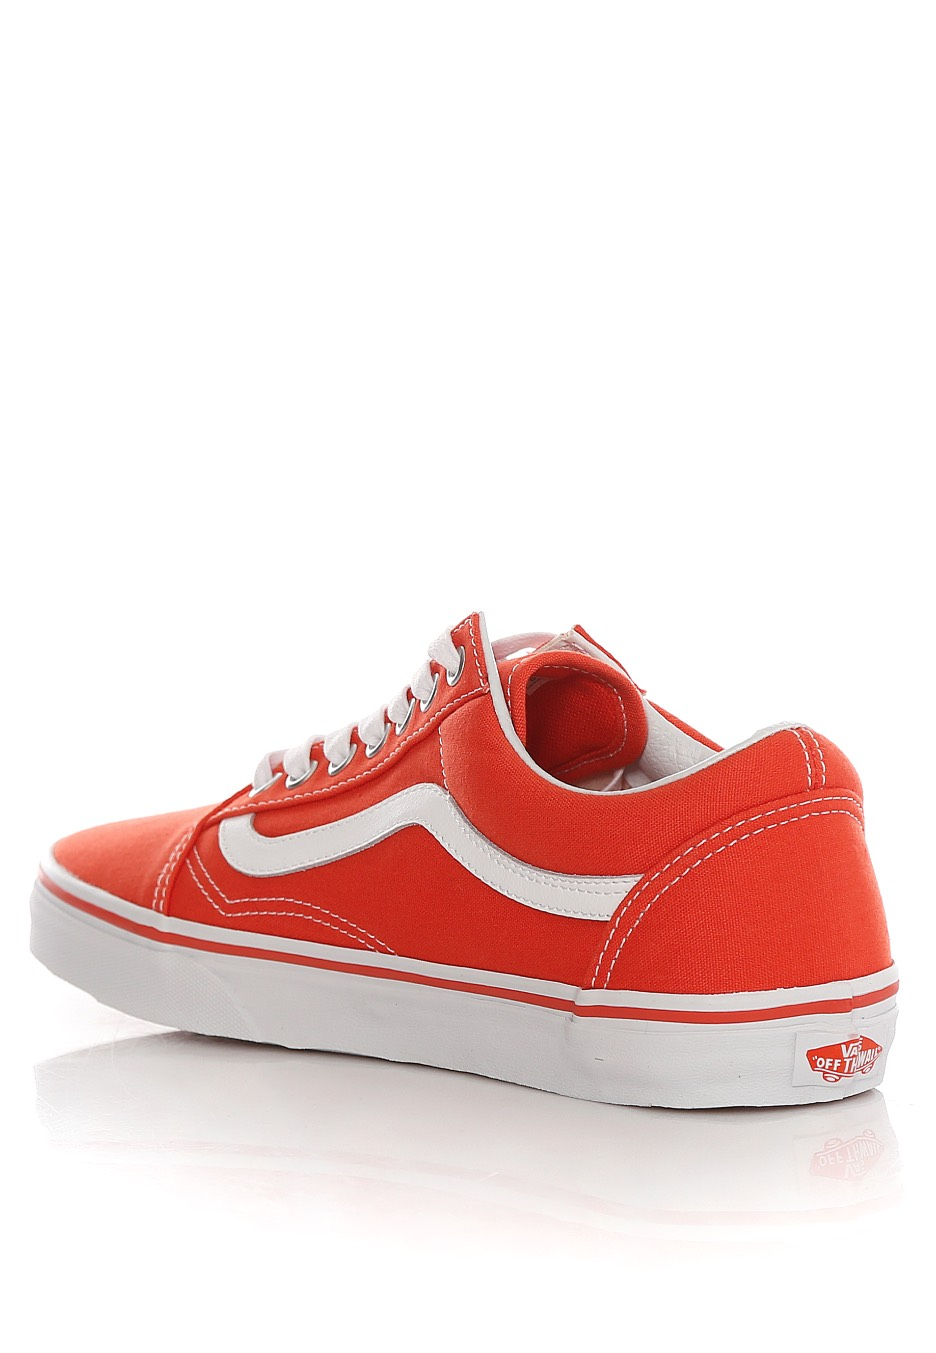 vans old skool canvas cherry tomato true white shoes. Black Bedroom Furniture Sets. Home Design Ideas